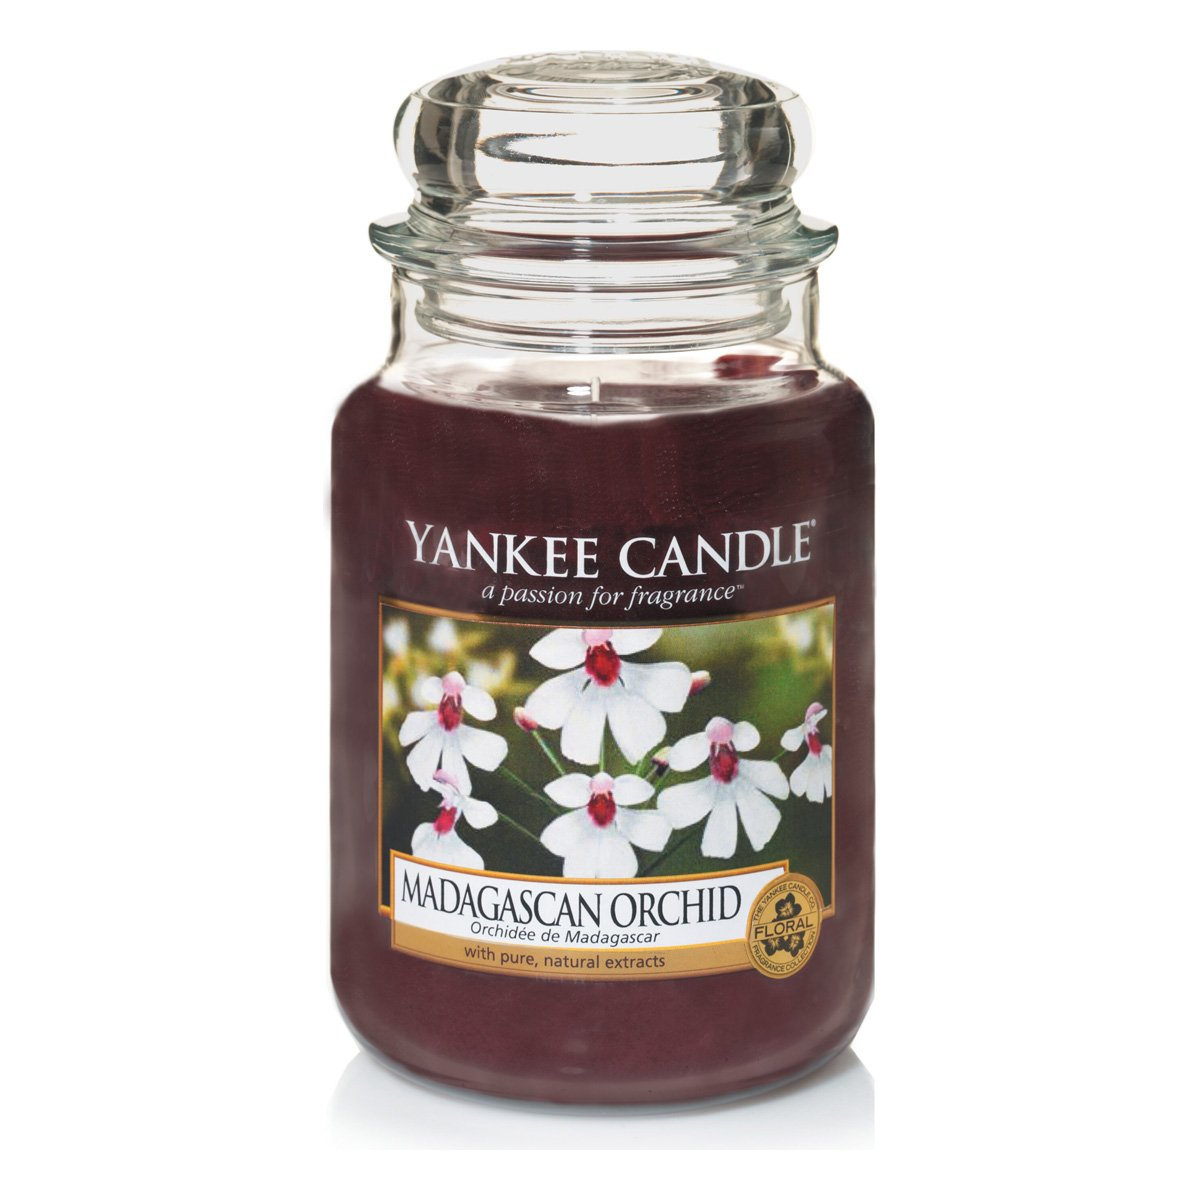 Yankee Candle Large Jar Candle, Madagascan Orchid by Yankee Candle B00YNAWL4Q